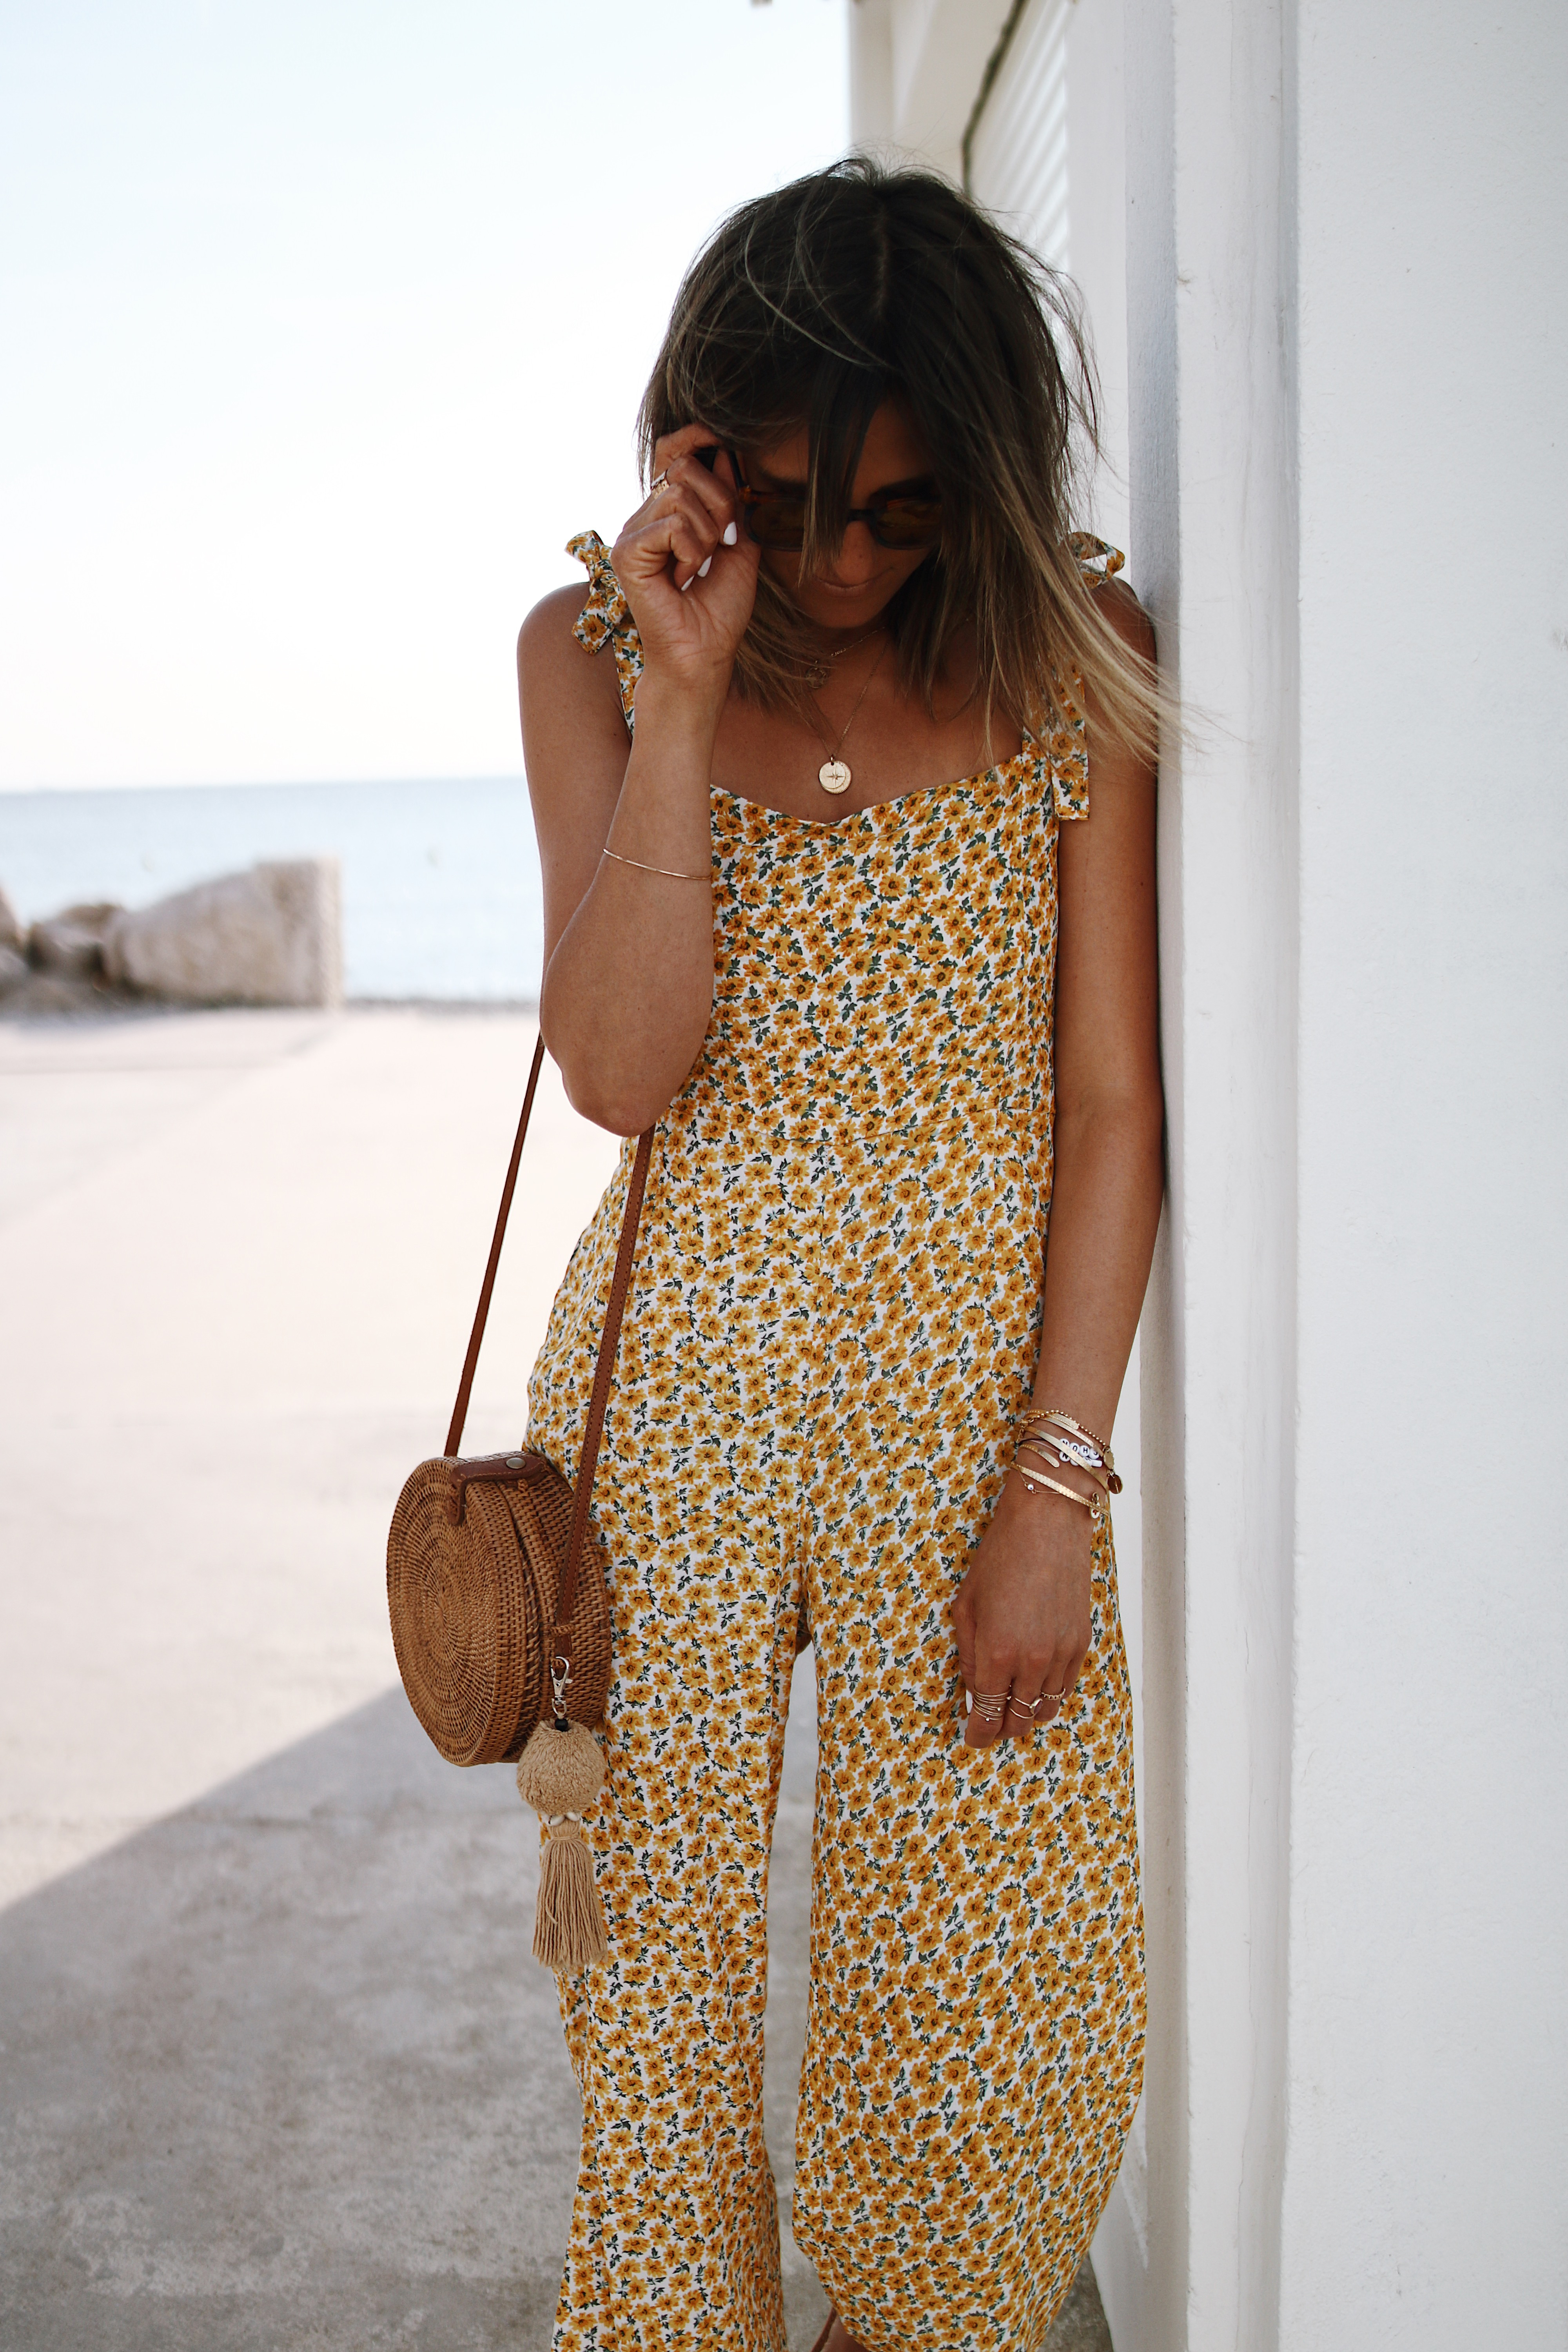 Chon & CHON - www.chonandchon.com - YELLOW MARGUERITE - combinaison Faithfull the brand, faithful the brand jumpsuit - summer outfit, summer style, yellow jumpsuit, combinaison pantalon jaune été